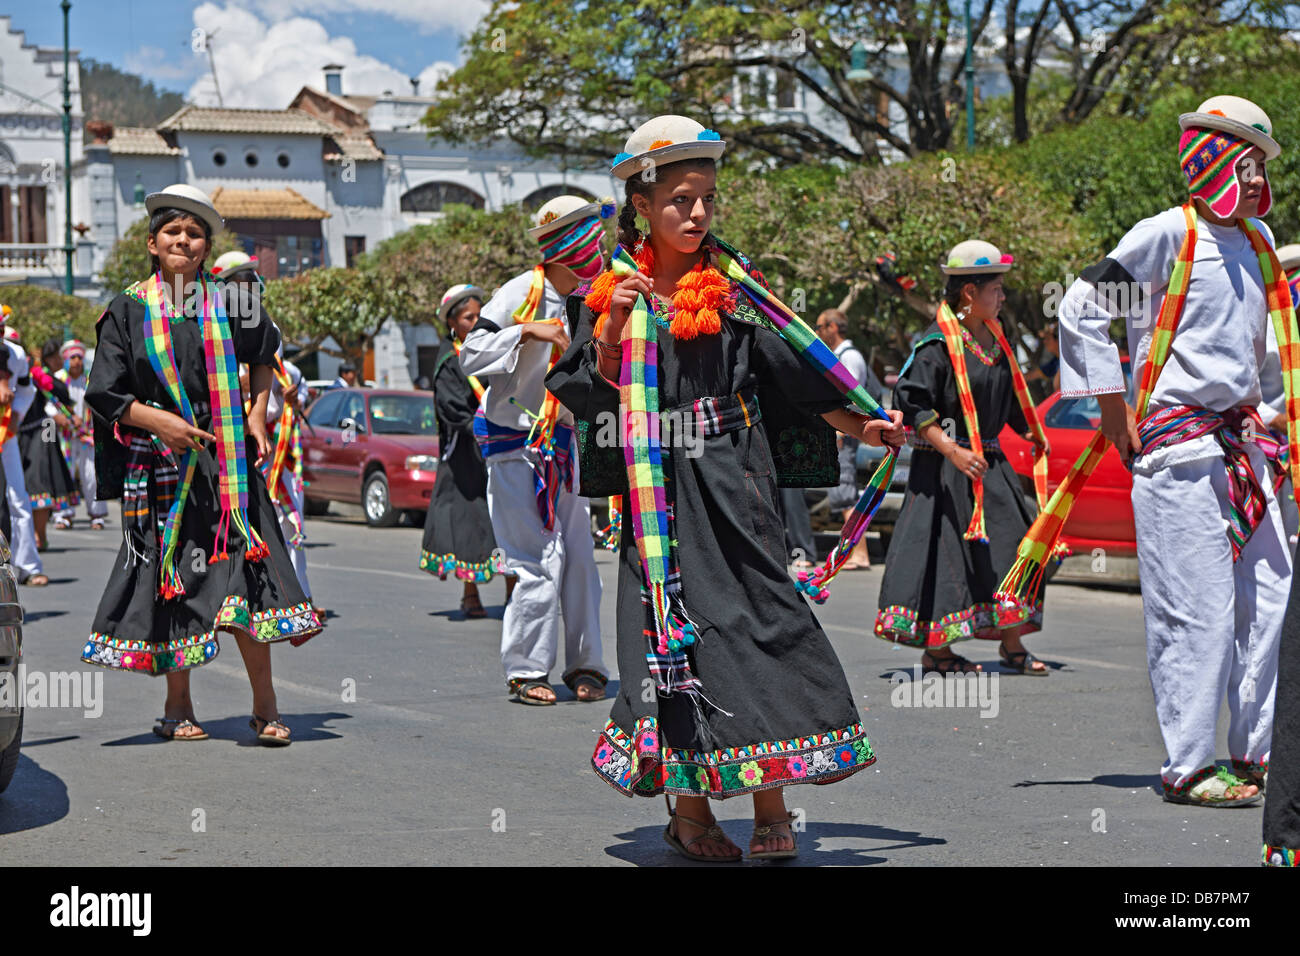 indigenous people with traditional costumes dancing in the street of Sucre, Bolivia, South America - Stock Image